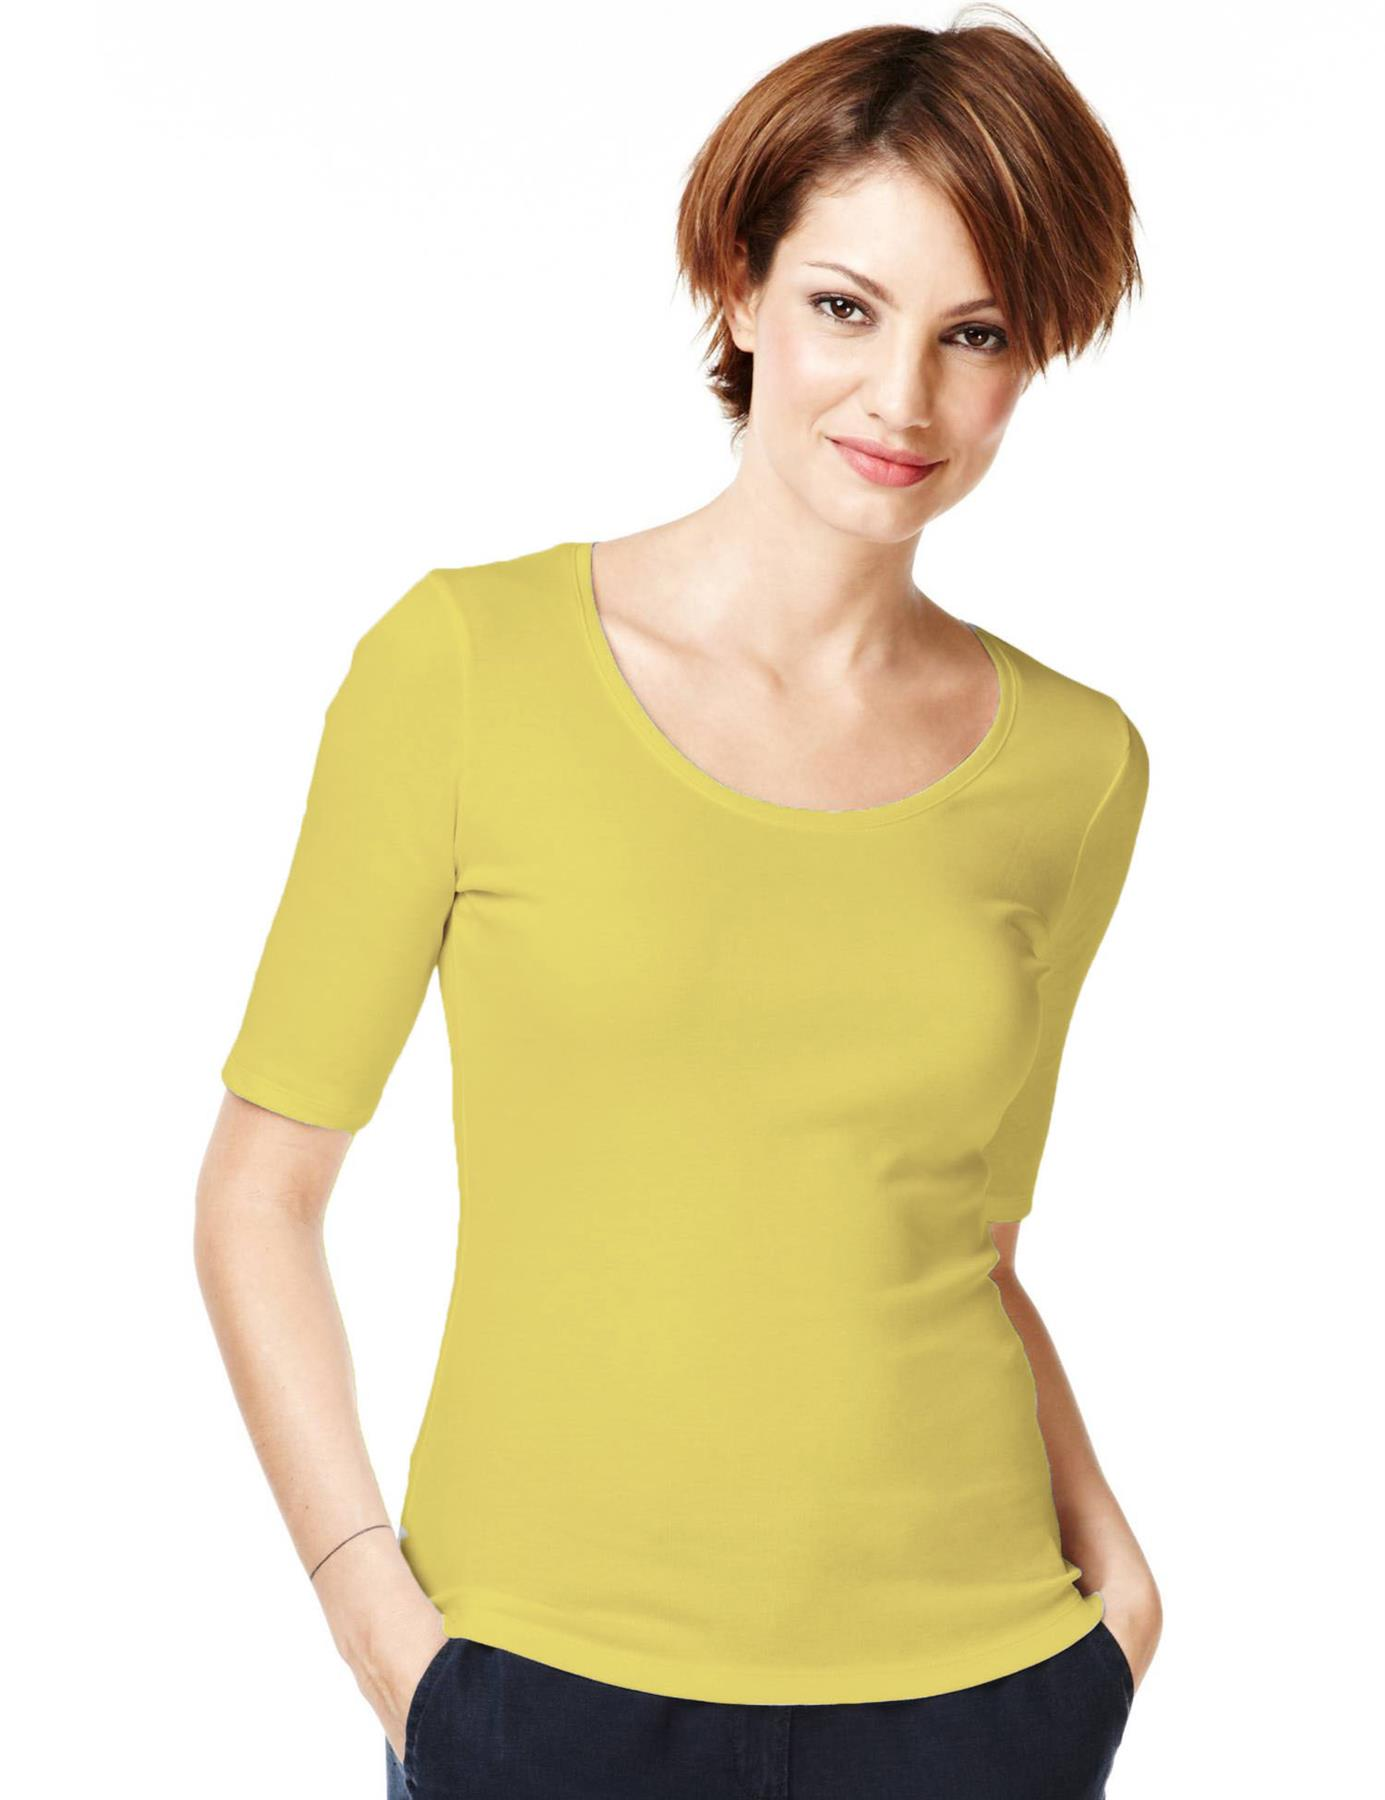 Ladies-Scoop-Neck-Half-Sleeve-T-Shirt-New-ex-M-amp-S-Casual-Regular-Fit-Size-8-22 thumbnail 19